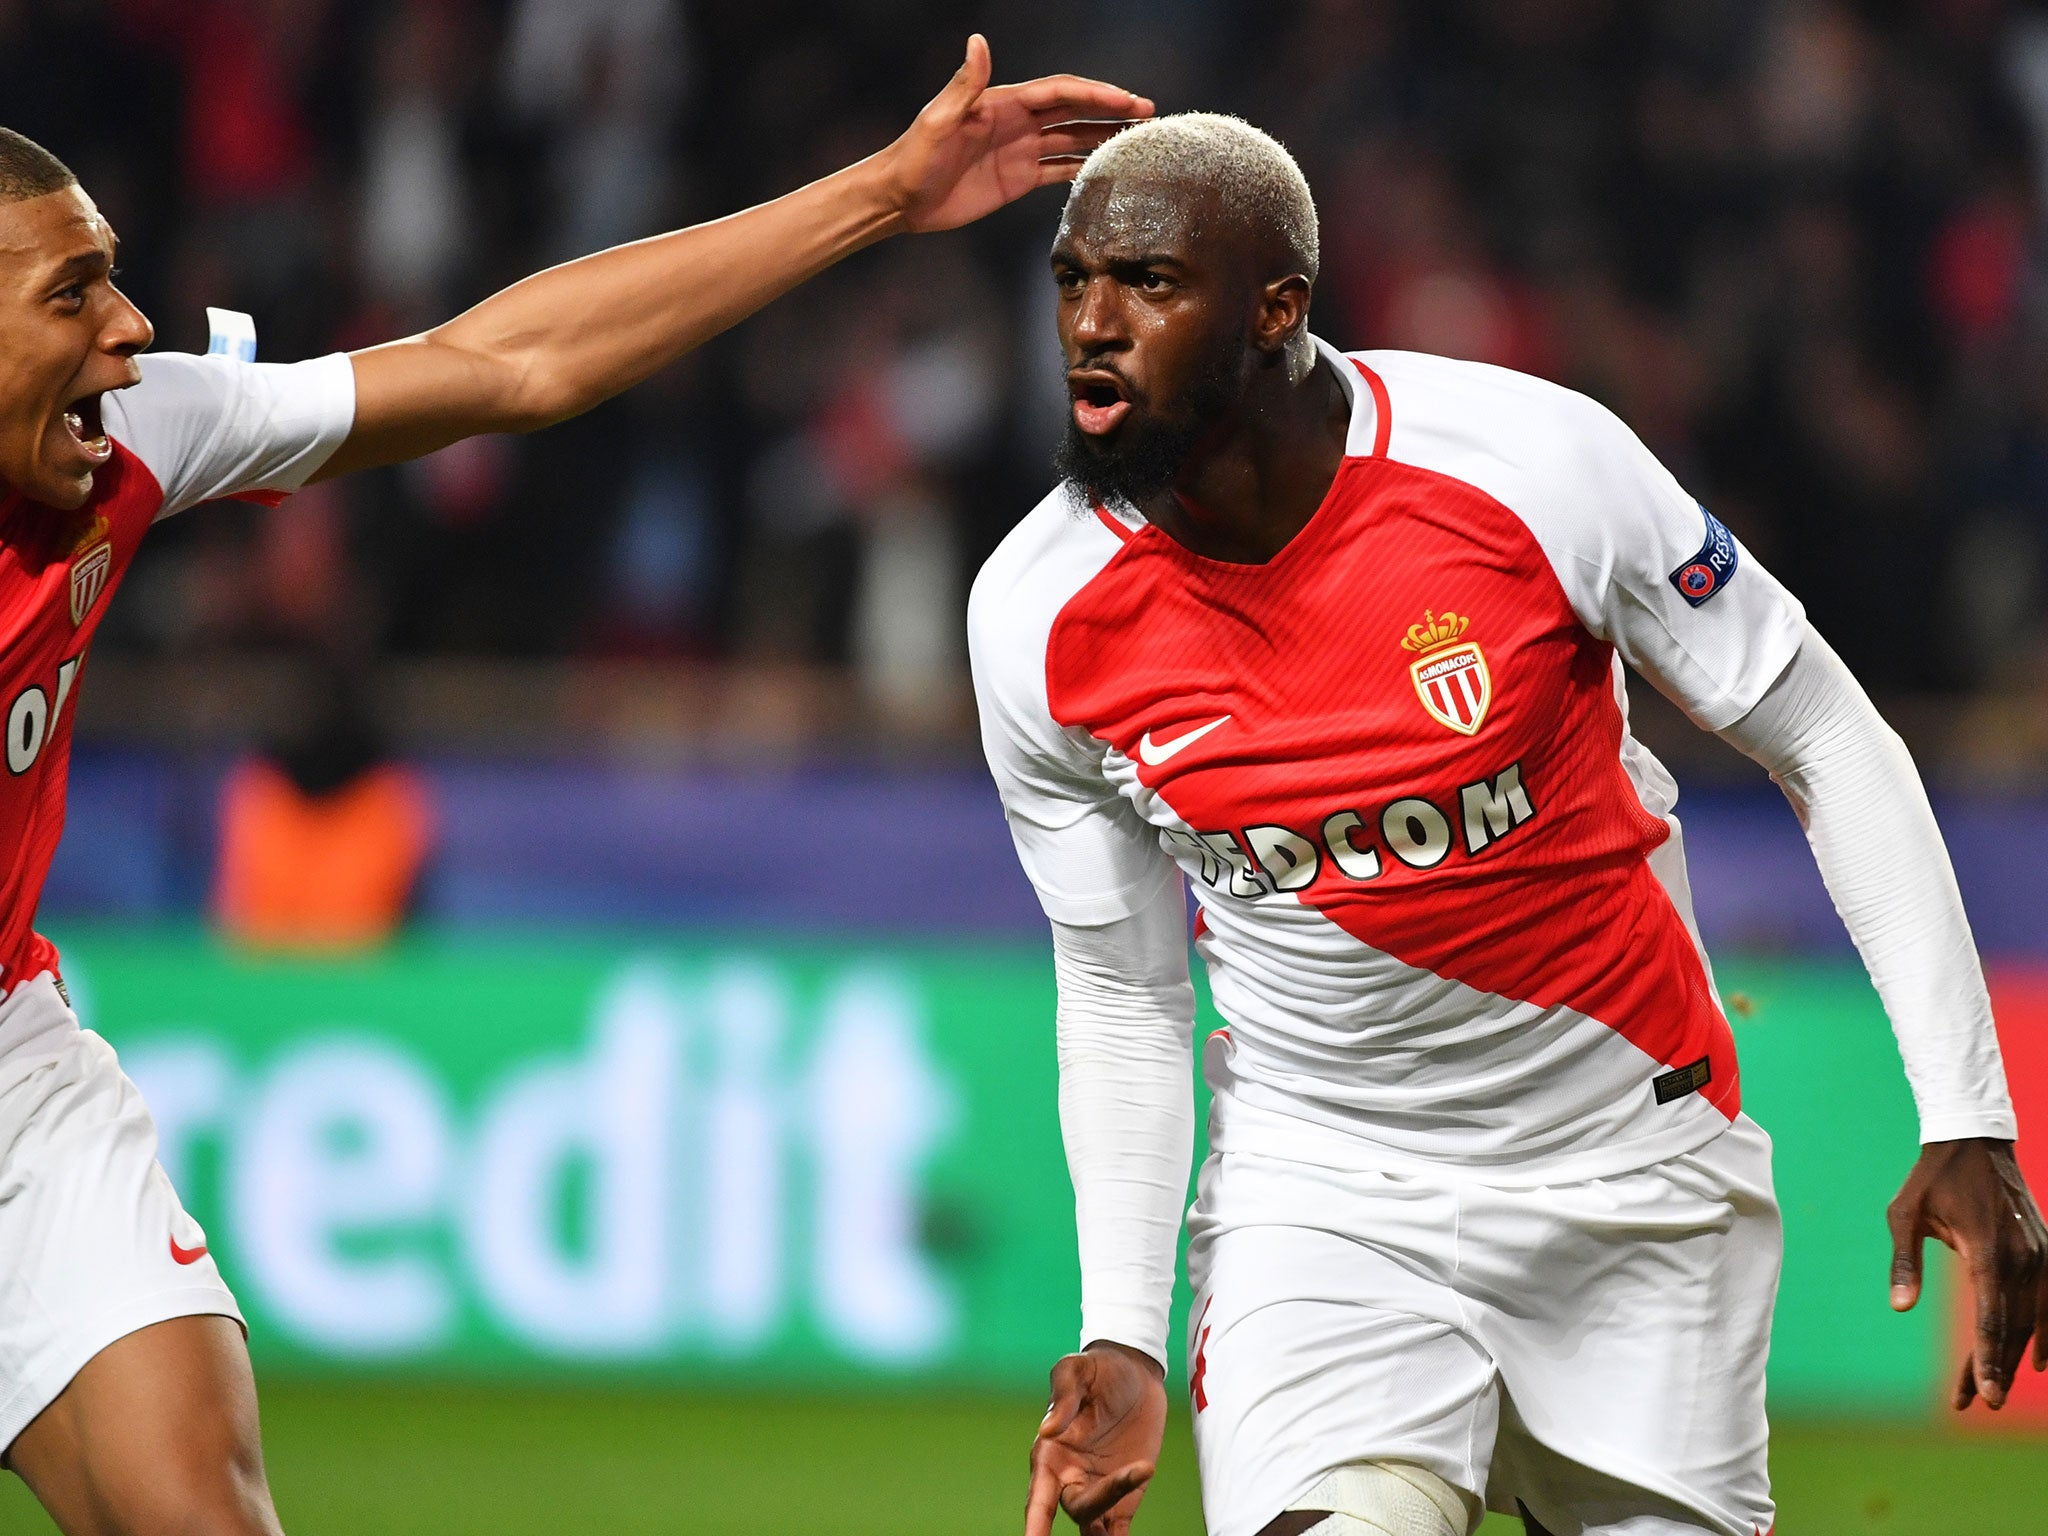 Chelsea close in on Tiemoue Bakayoko as Manchester United monitor